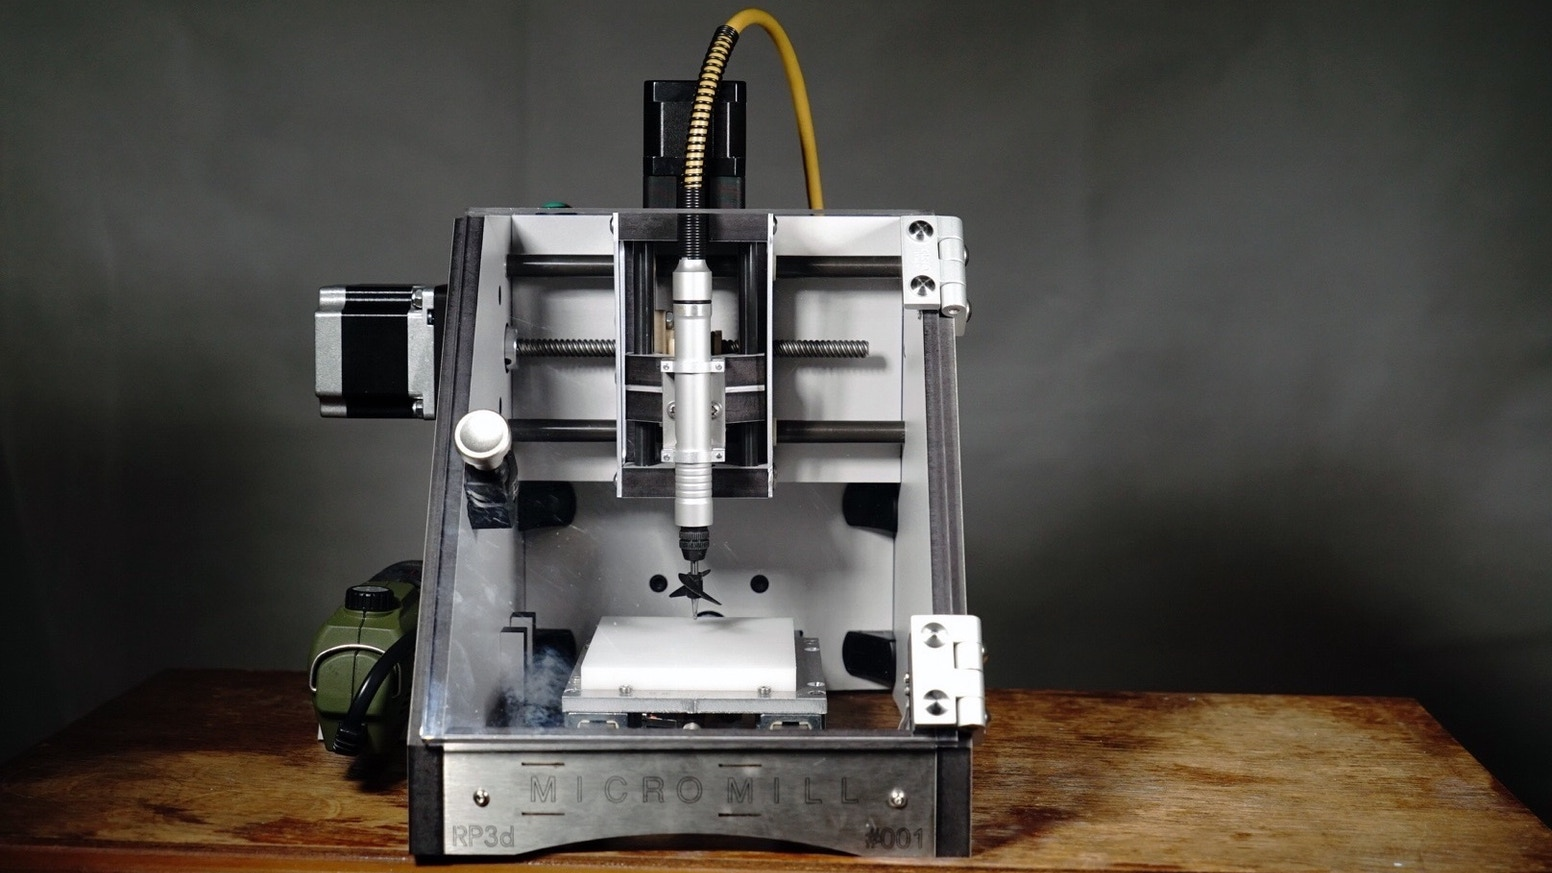 The Micromill A Desktop Cnc Milling Machine By Rp3d Kickstarter Pcb Cutting Printed Circuit Board Suppliers